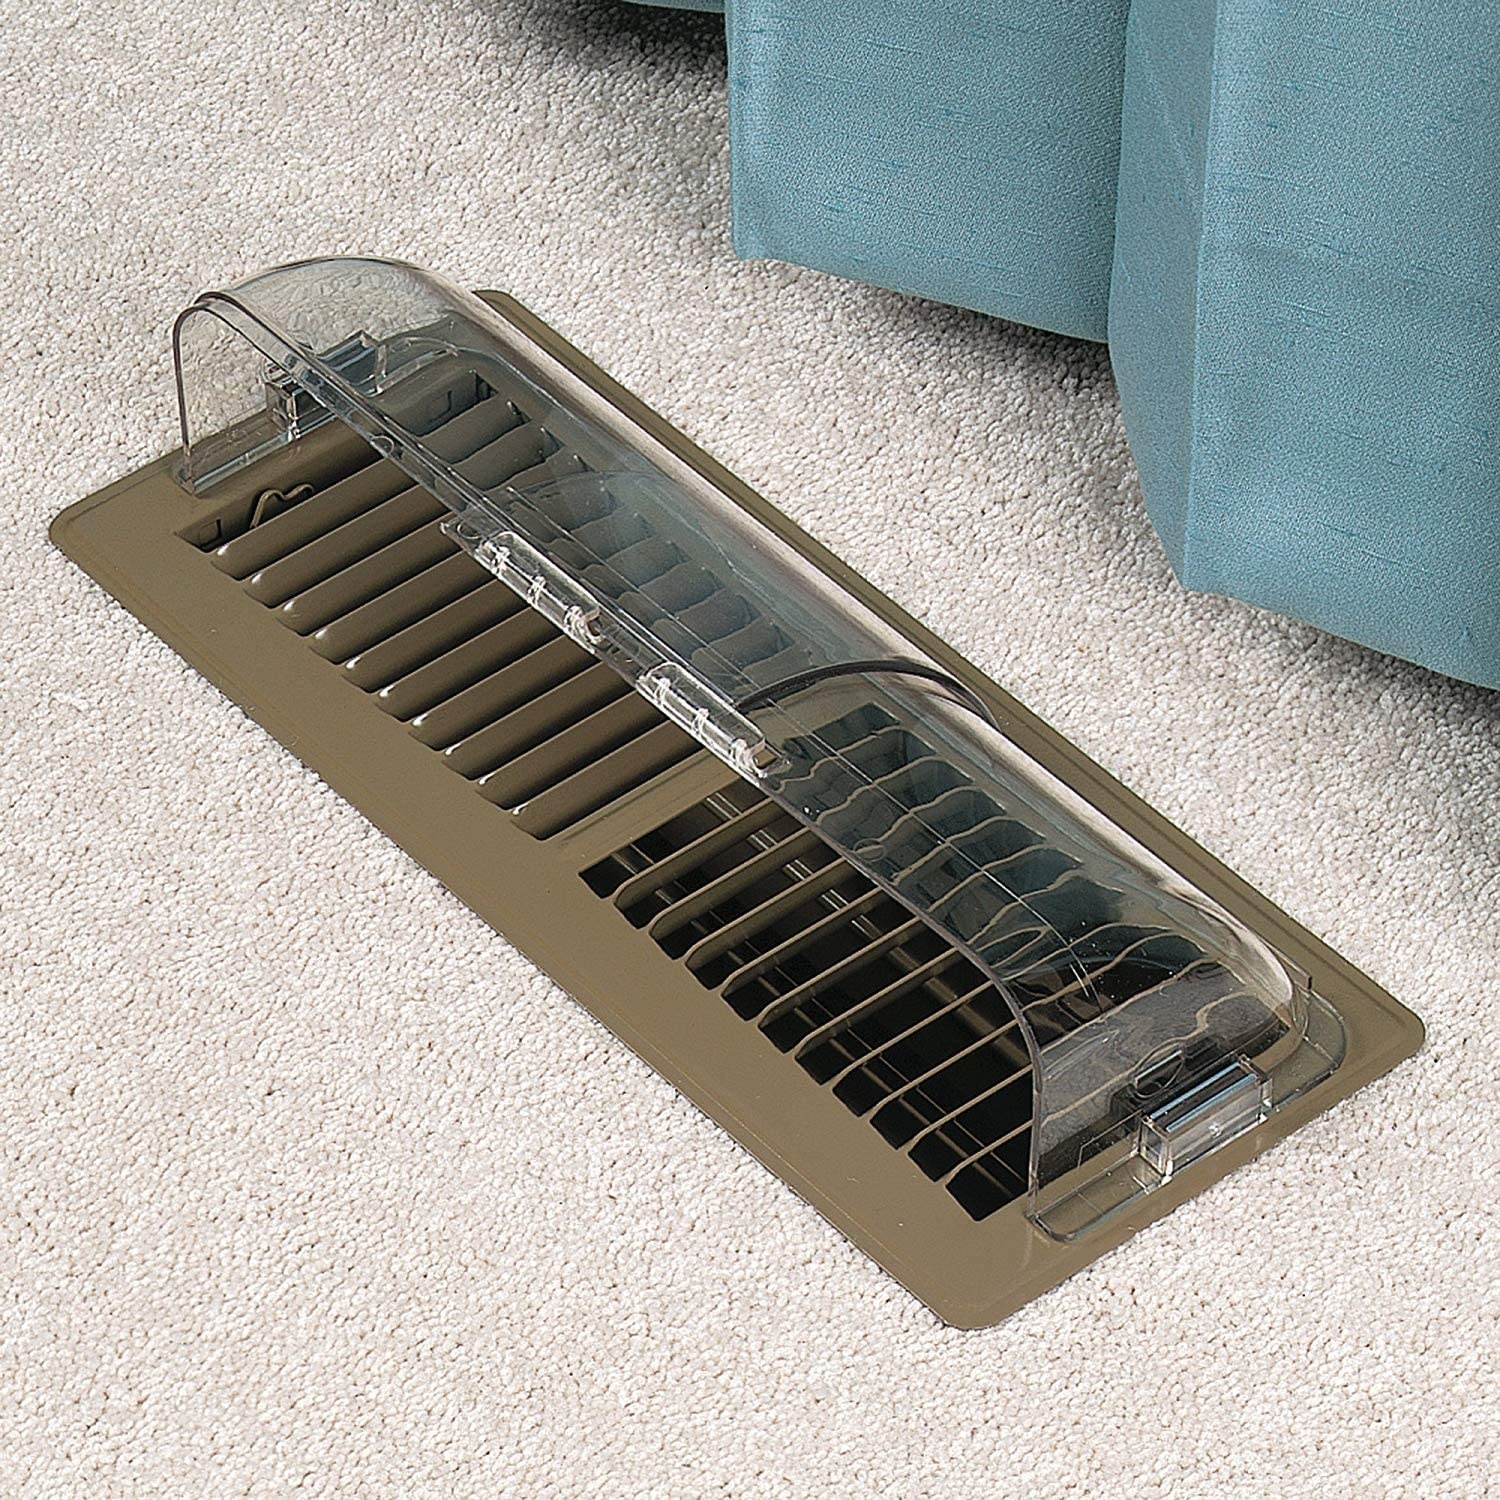 The vent deflector shown on top of a floor vent